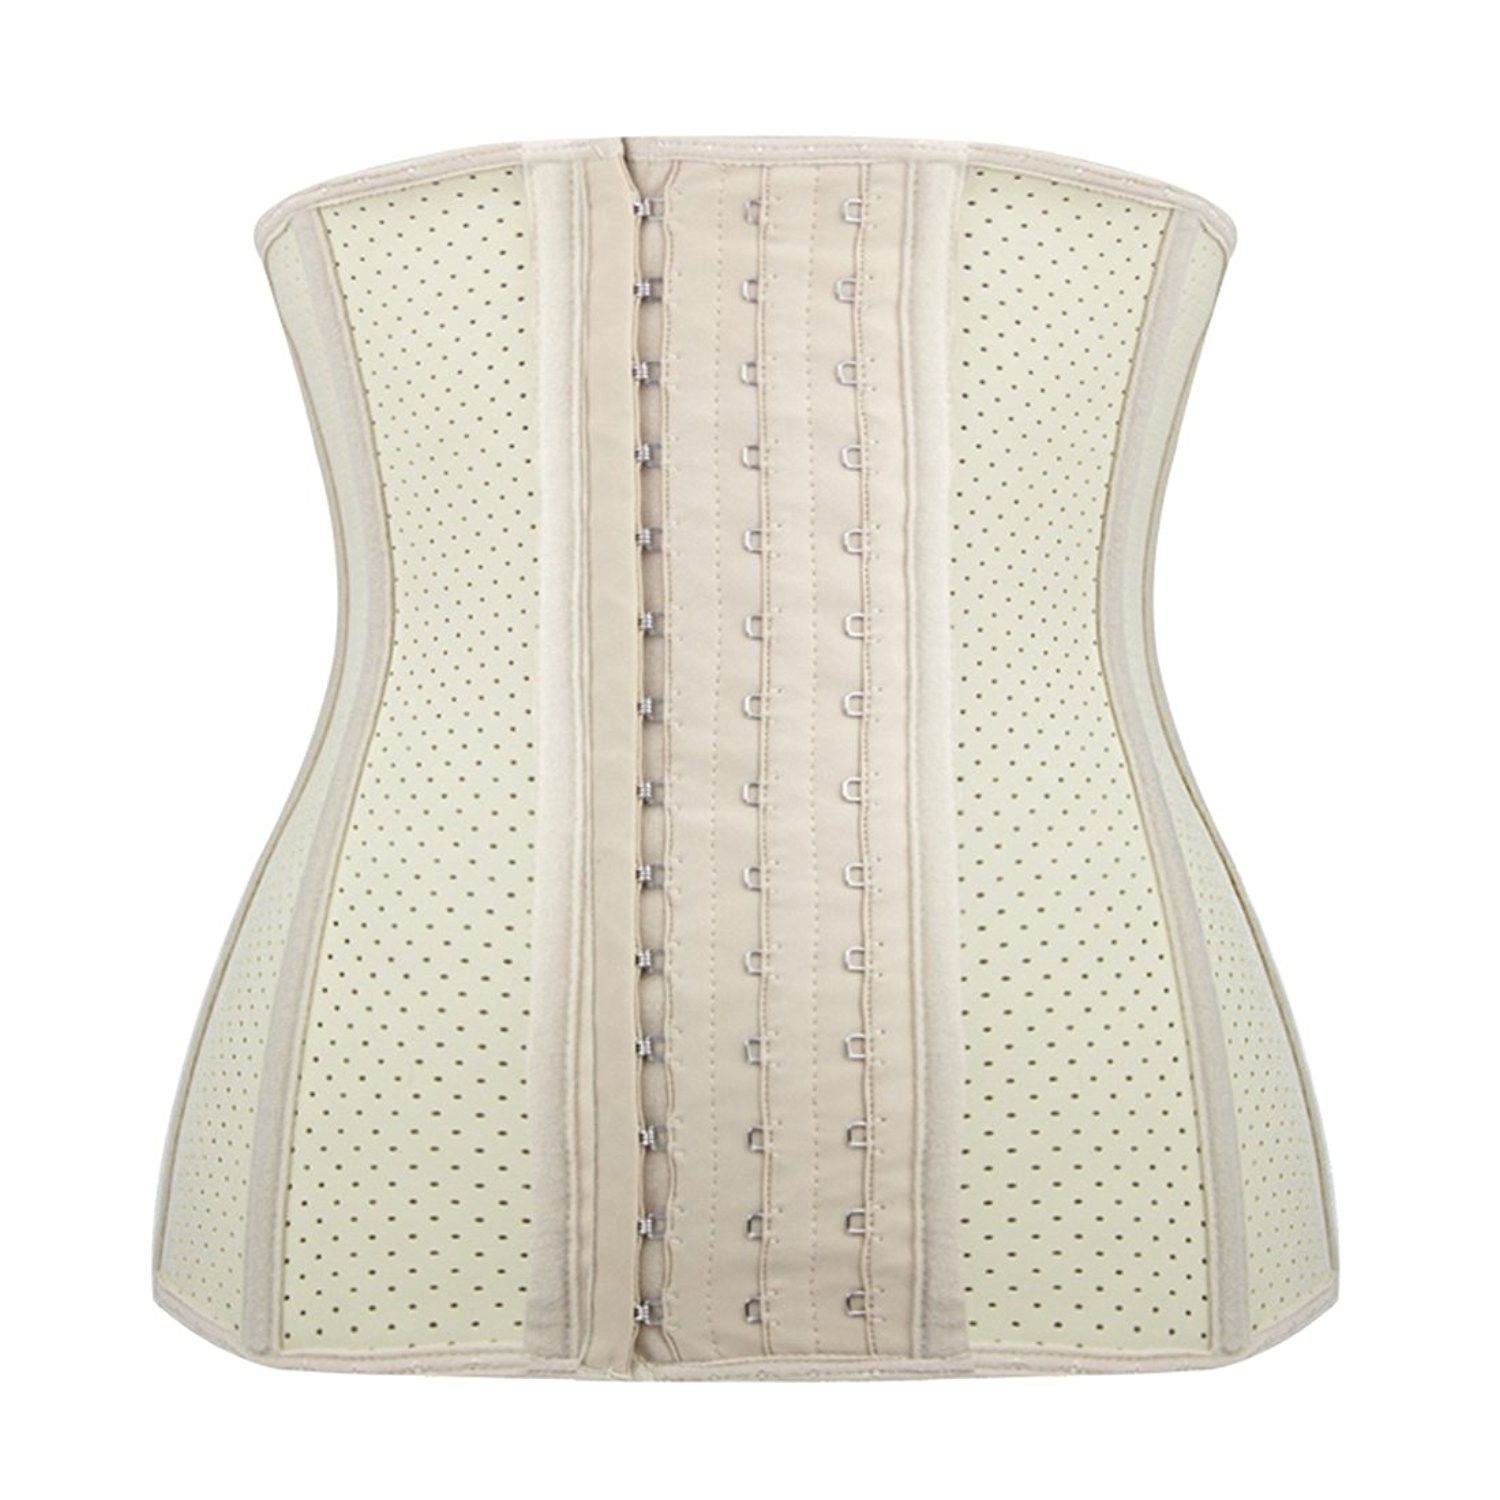 7672b82e12 Women Underbust Latex Sport Corset Waist Training Cincher 9 Steel Boned -  Beige - CN184UT2THZ